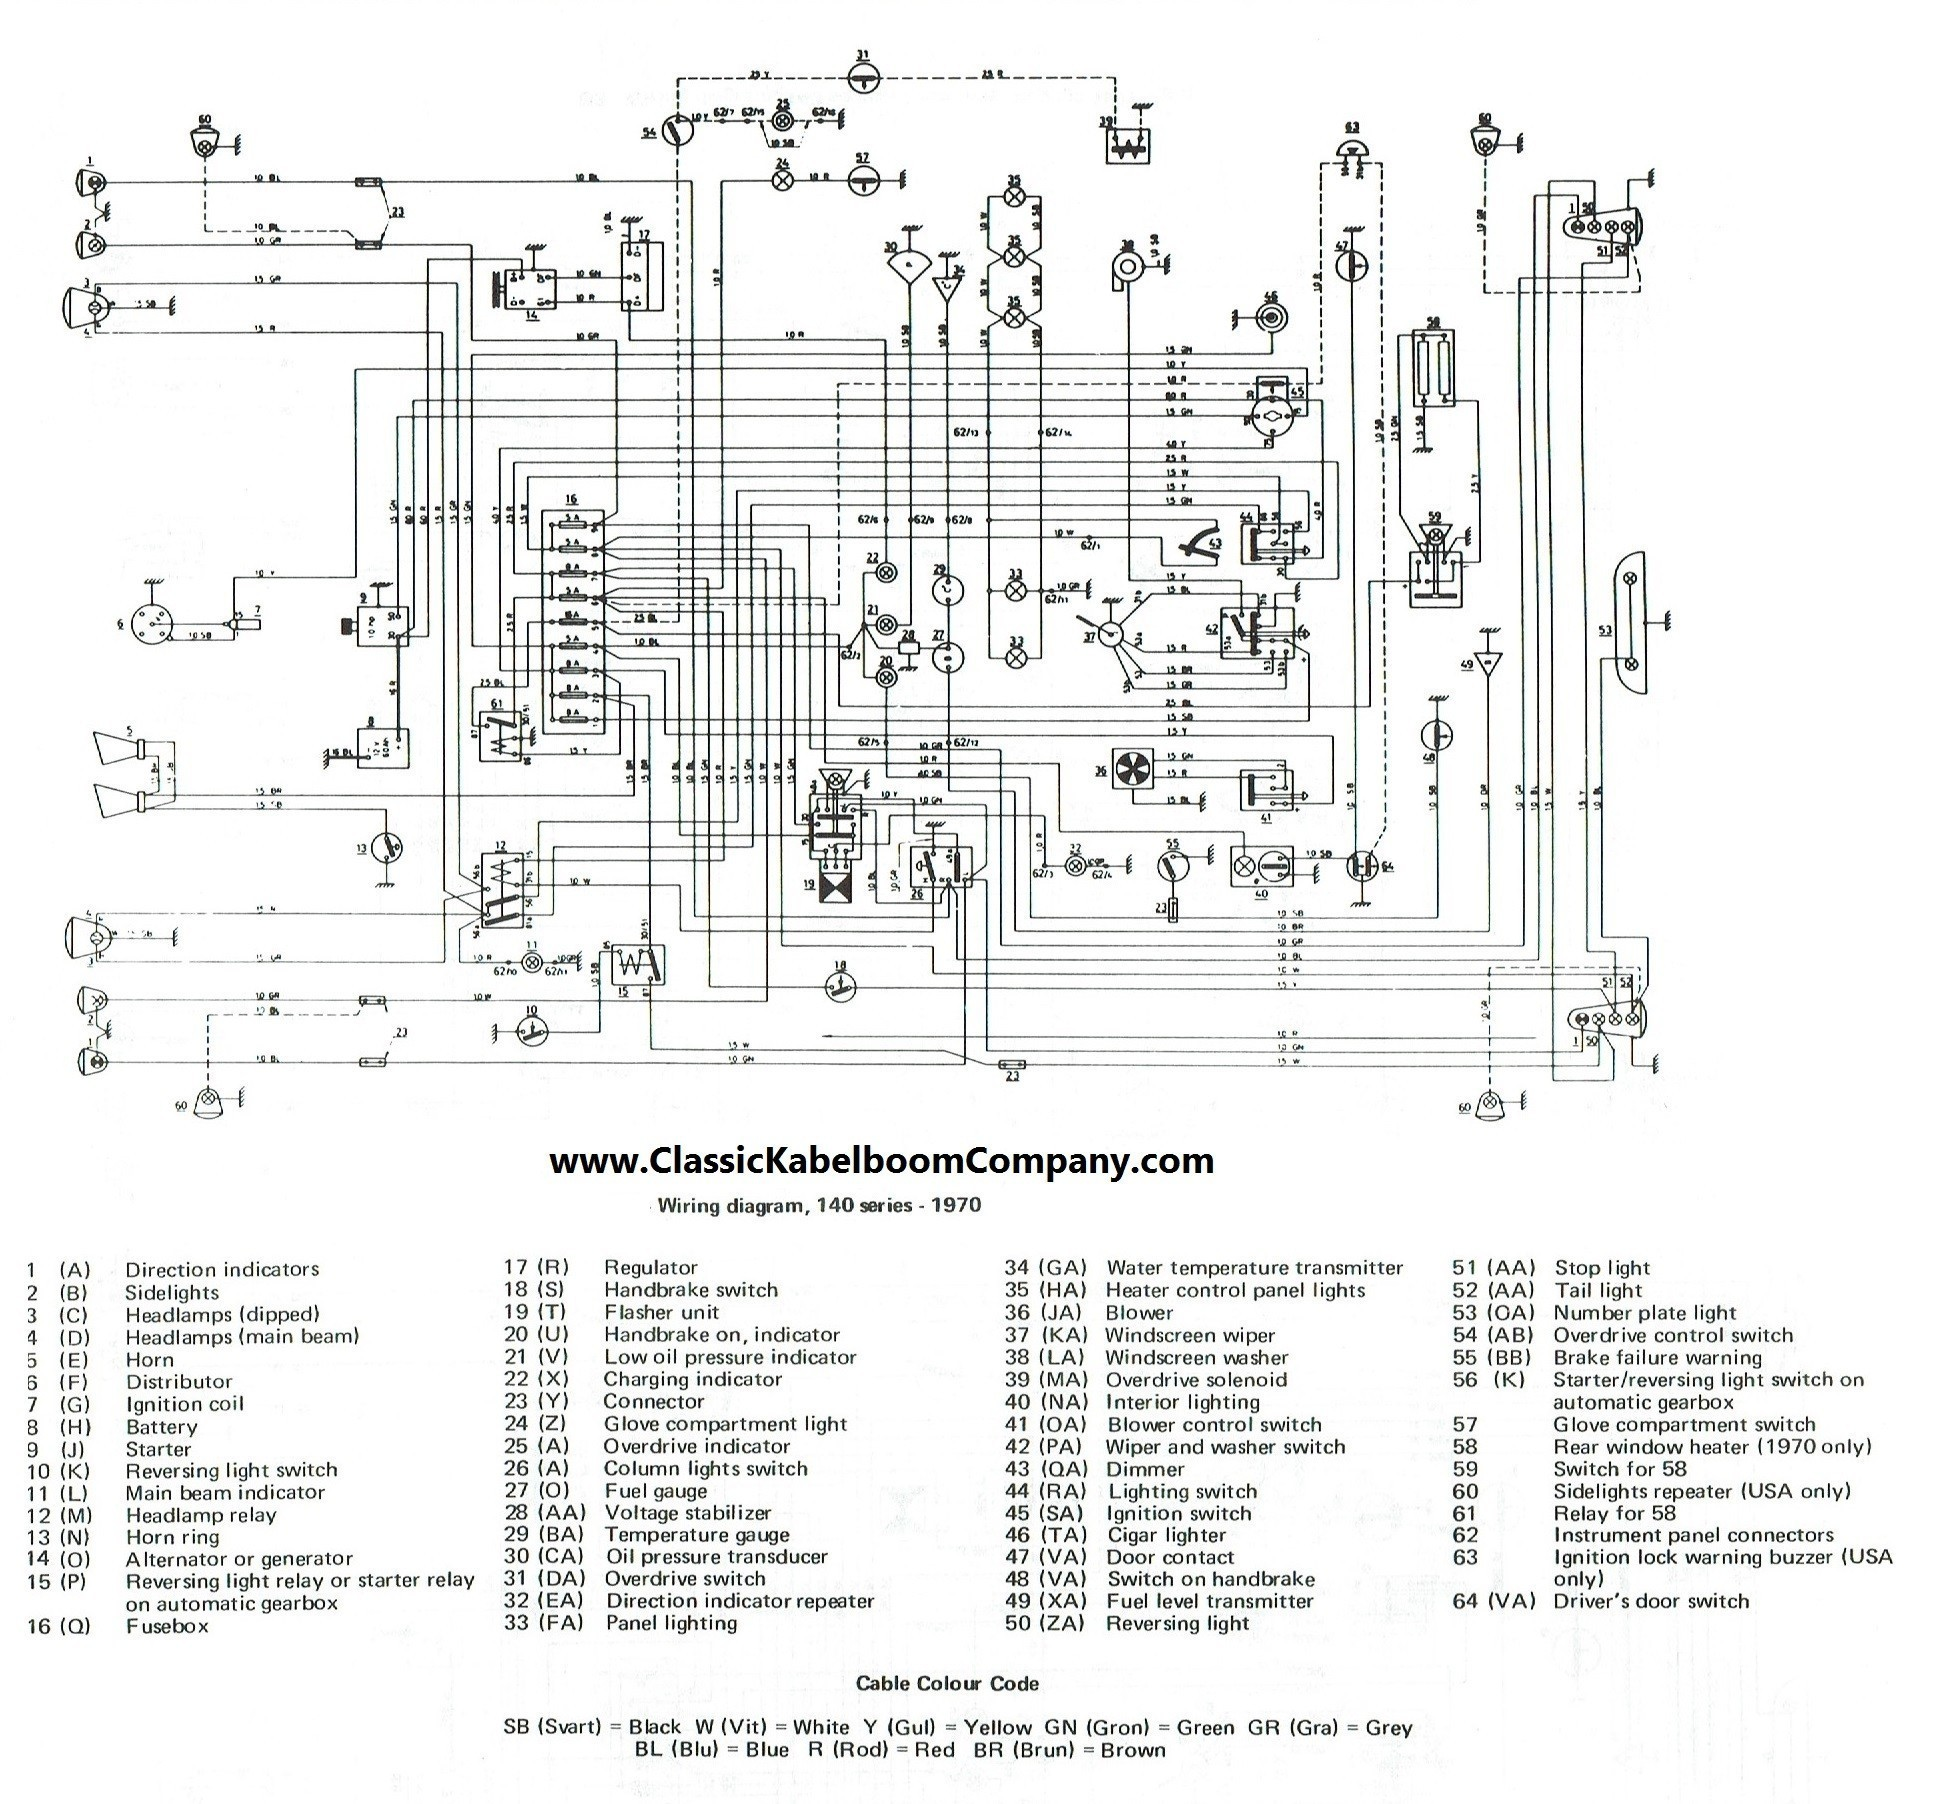 Volvo Penta Kad 43 Wiring Diagram - Wiring Diagram Direct mind-tiger -  mind-tiger.siciliabeb.it | Volvo Kad 43 Wiring Diagram |  | mind-tiger.siciliabeb.it